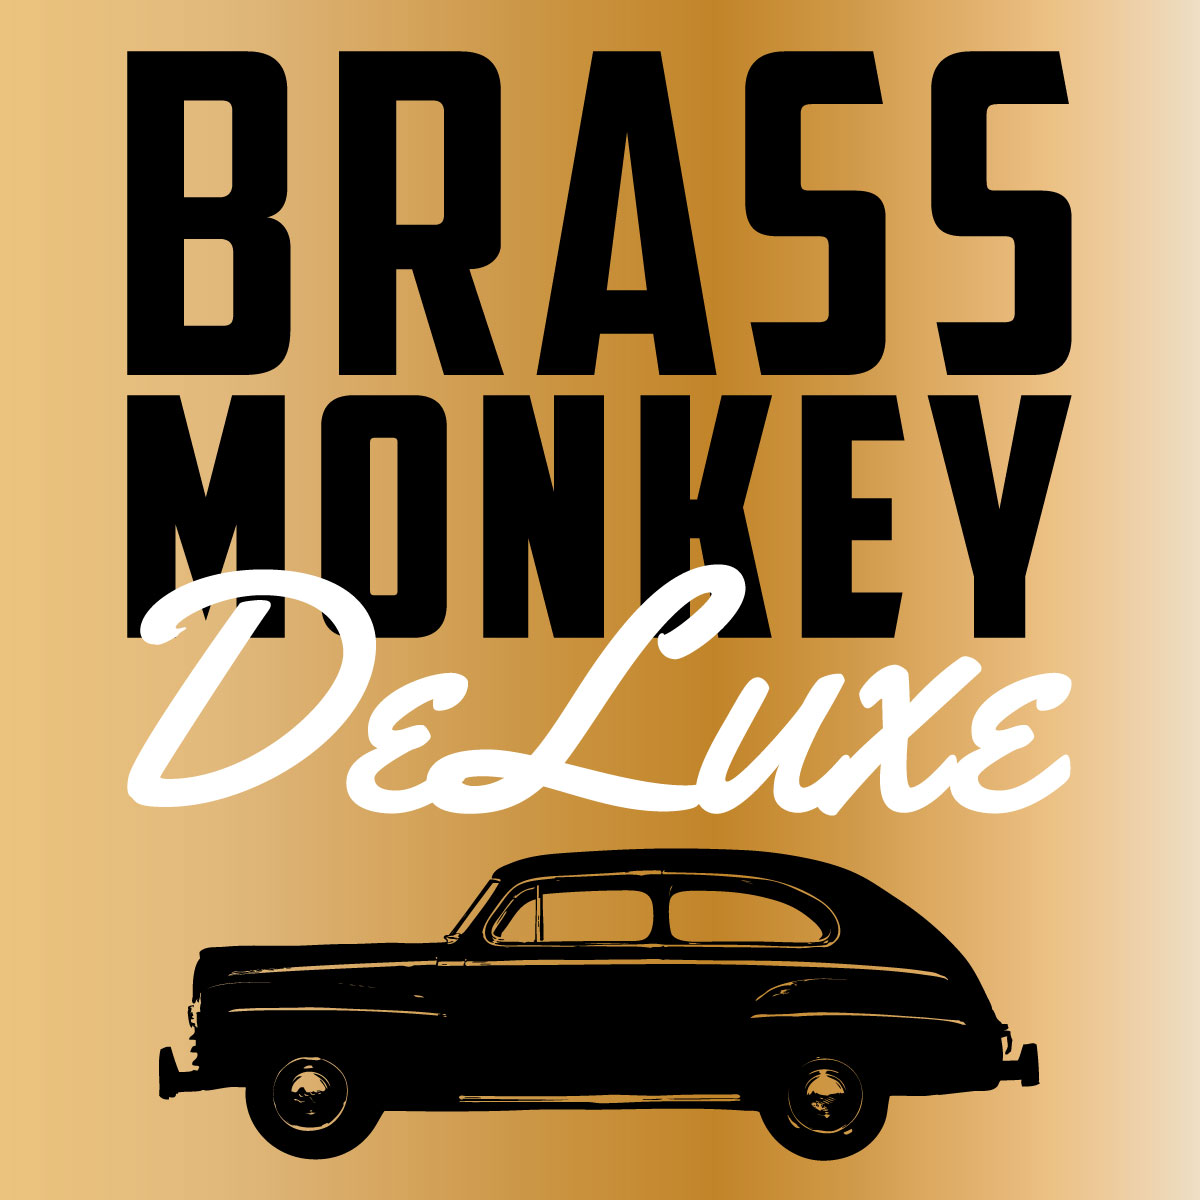 brass-monkey-deluxe.jpg